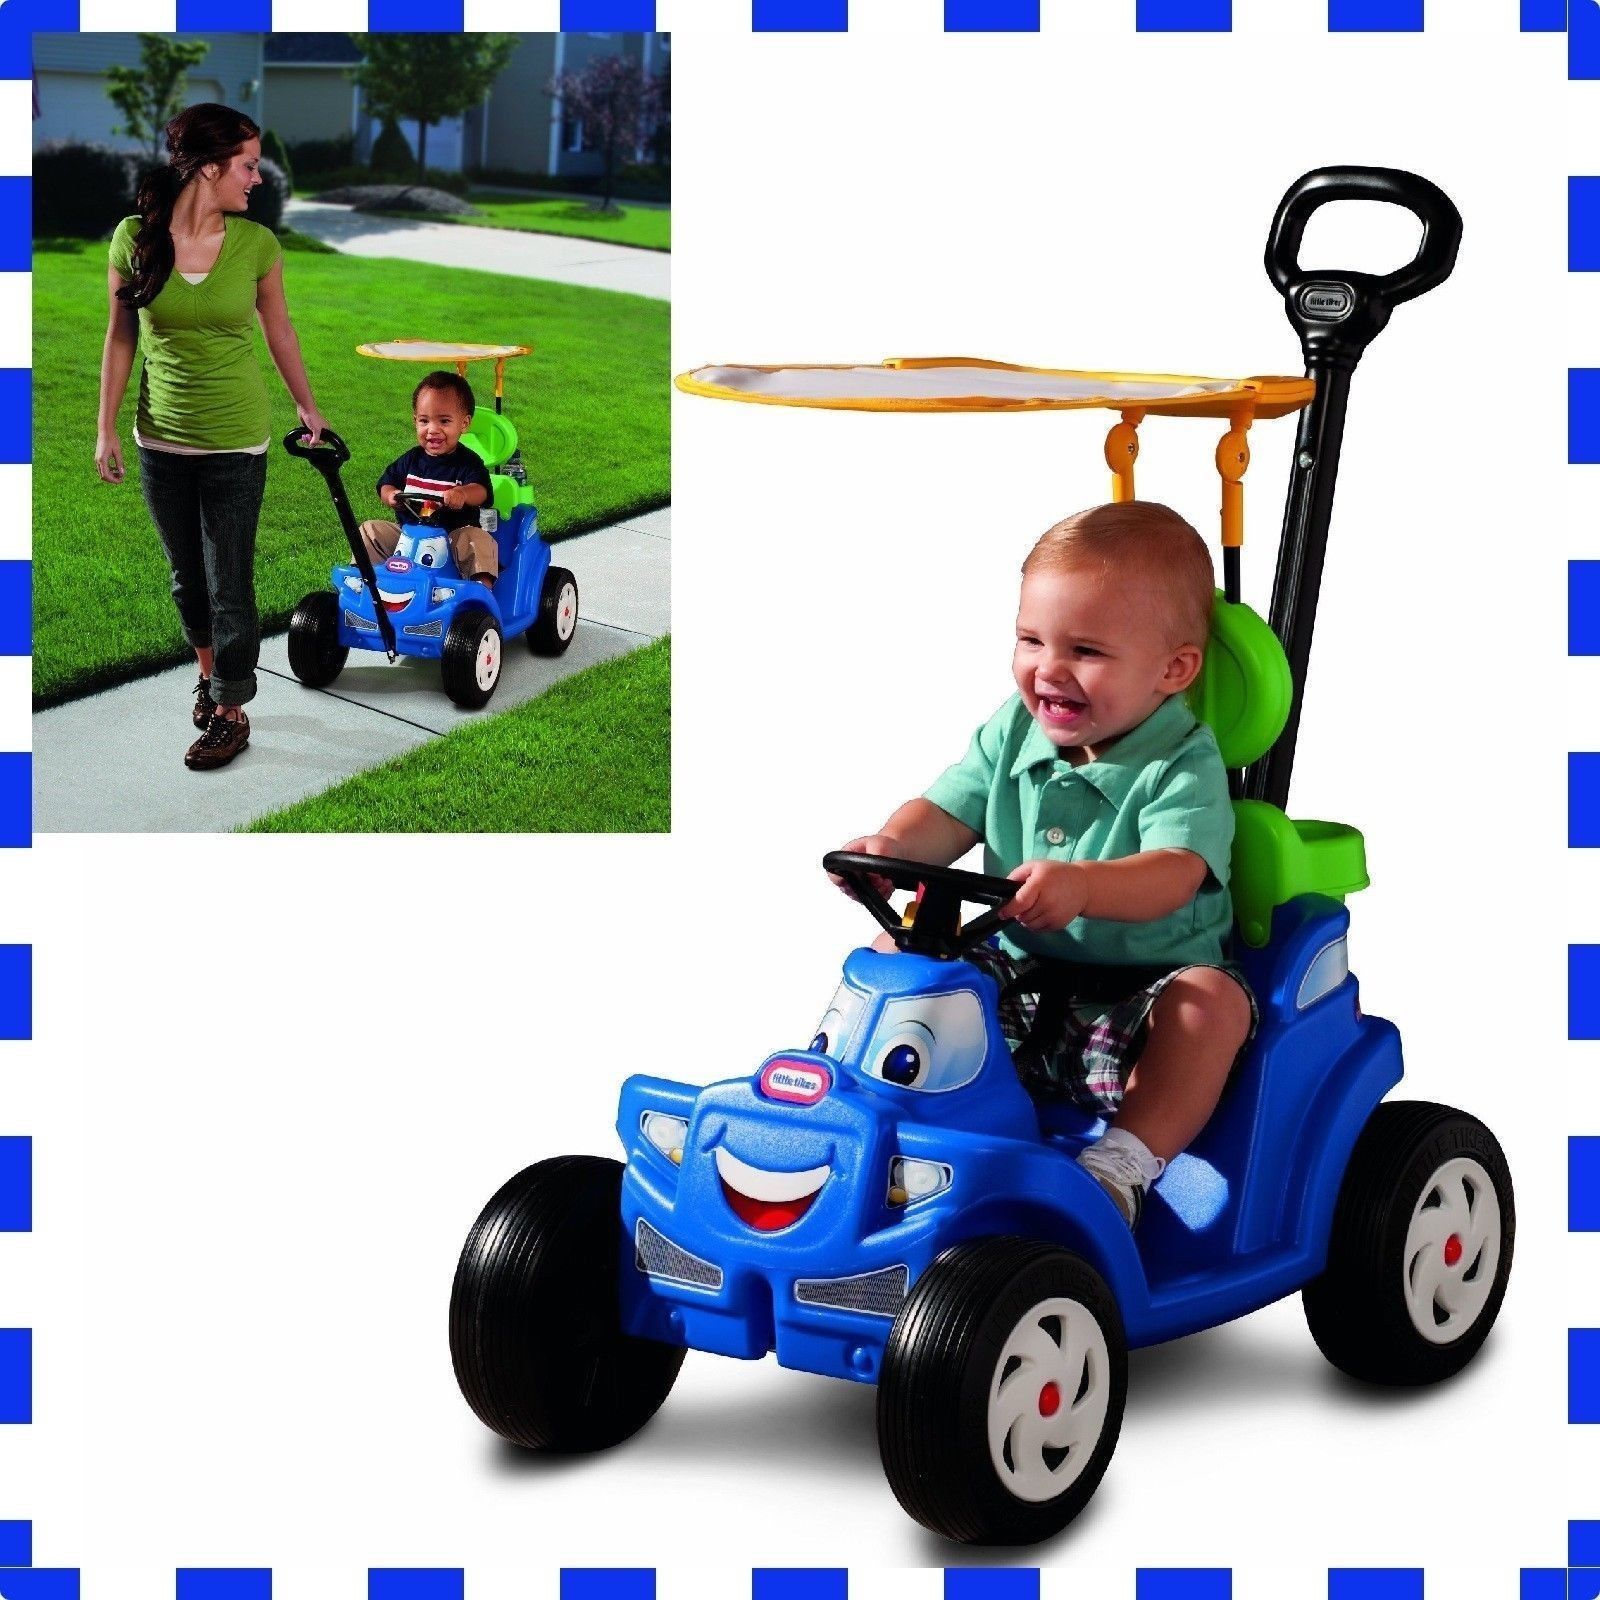 Ride On Toys For Girls Boys Toddlers Riding 1 4 Year Old Gifts Baby 2 In 1 Cozy Ride On Toys Baby Developmental Toys Toys For Girls